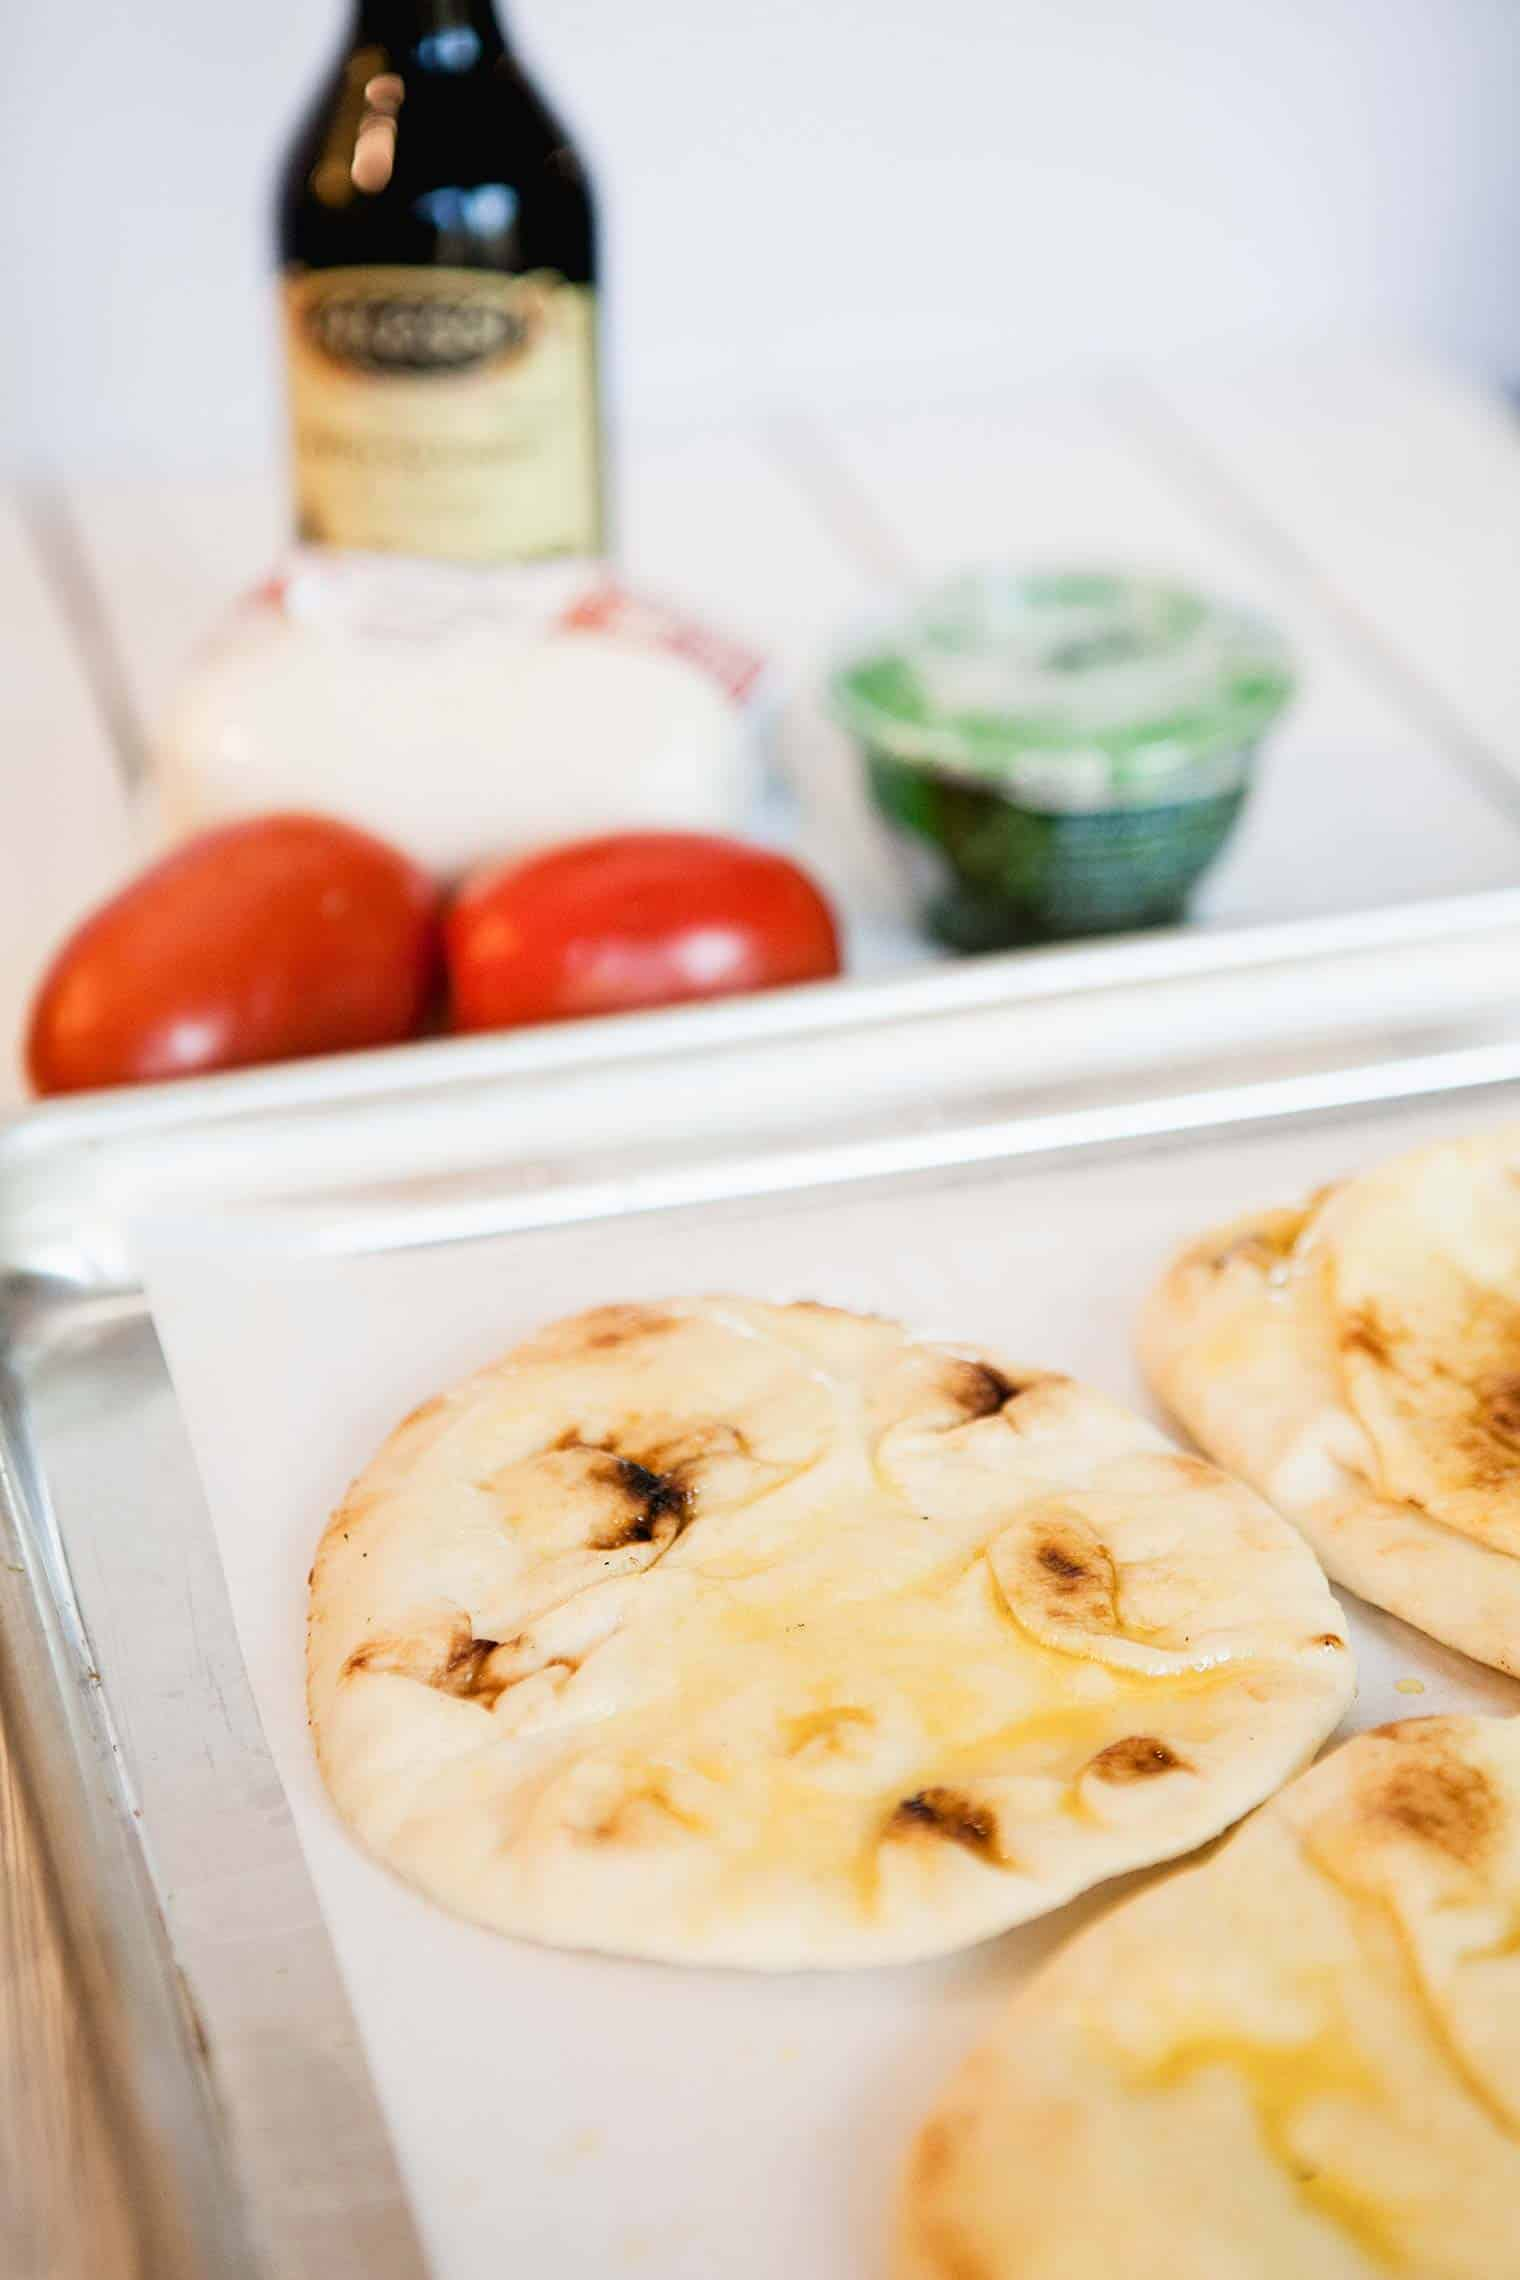 brush flat bread with oil and bake